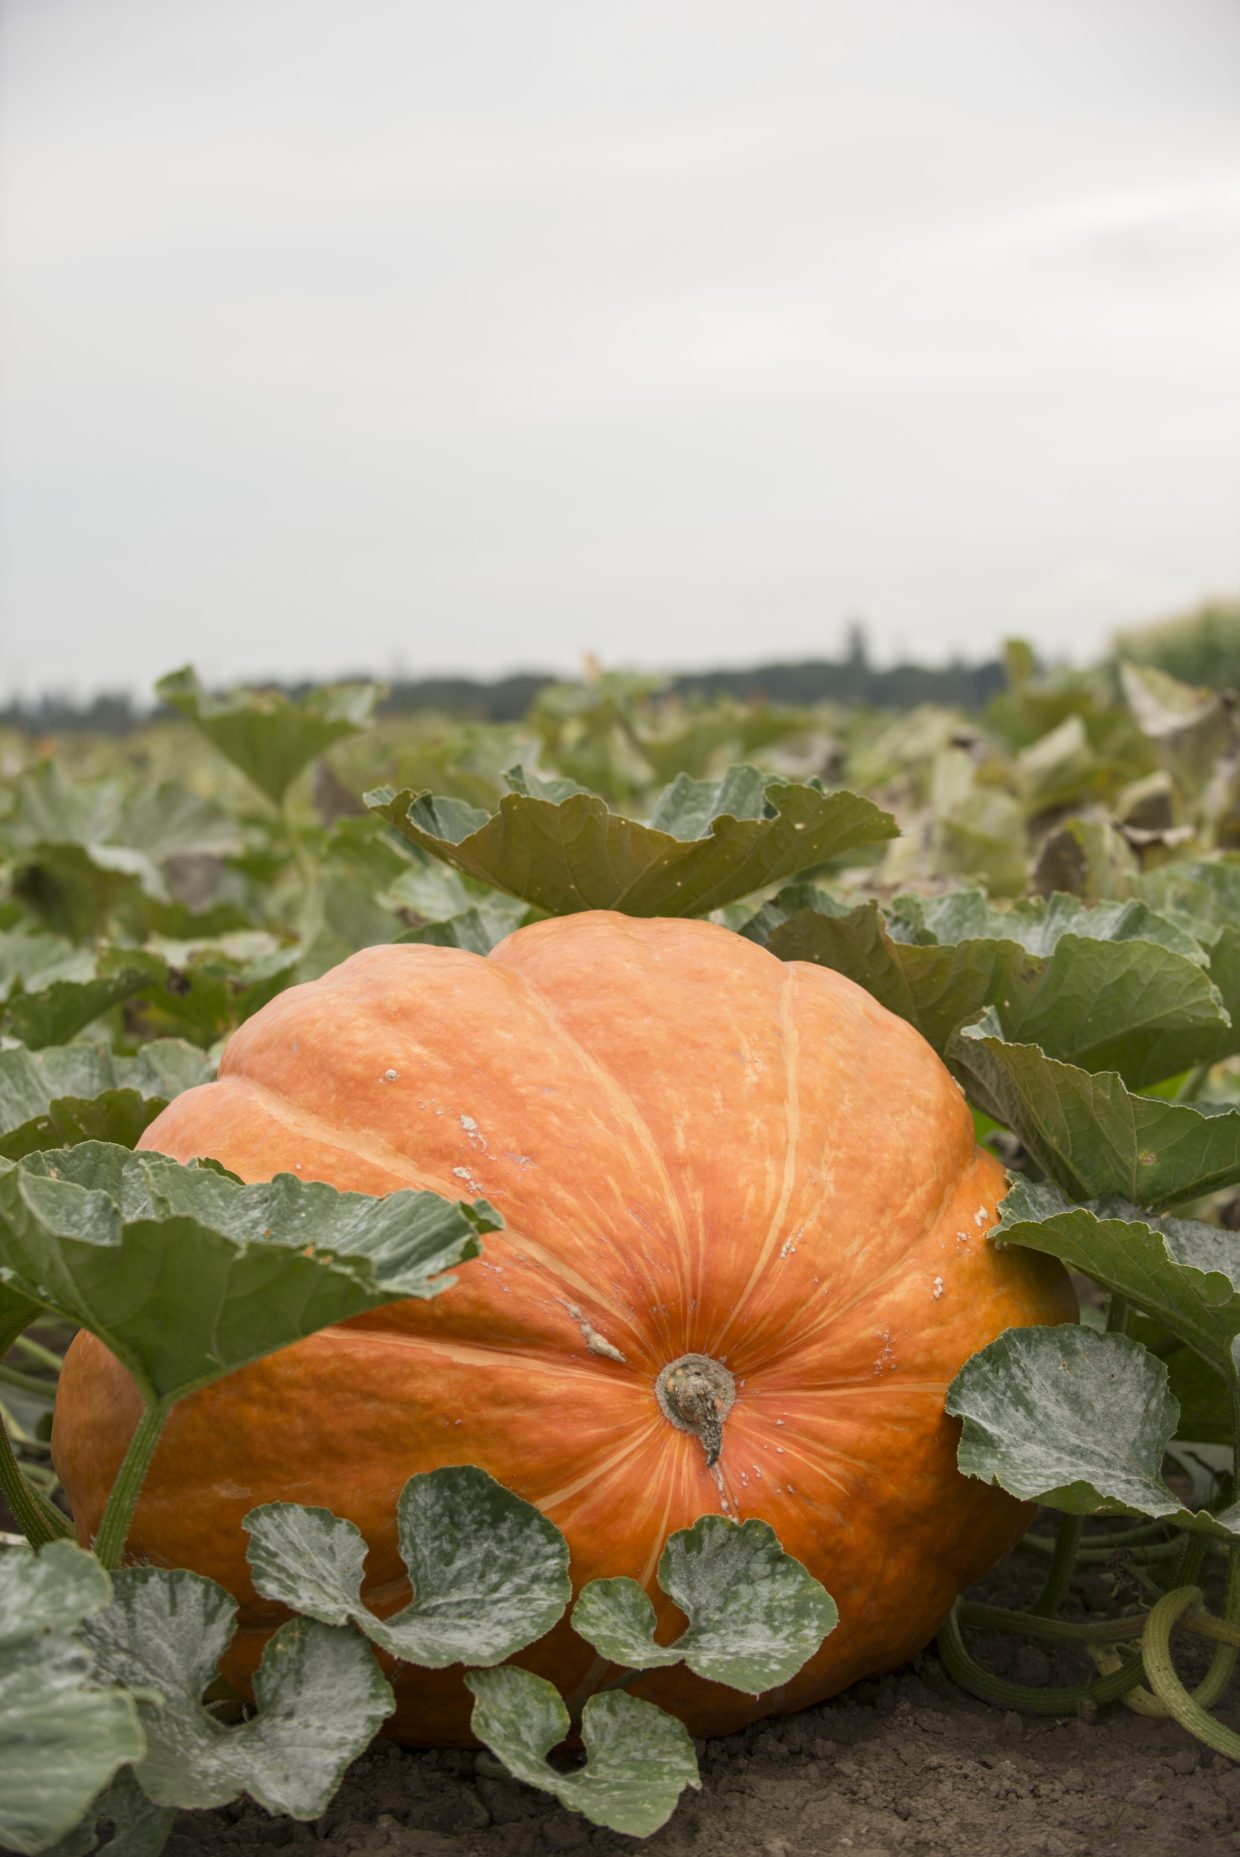 Pump up your pumpkins to giant size